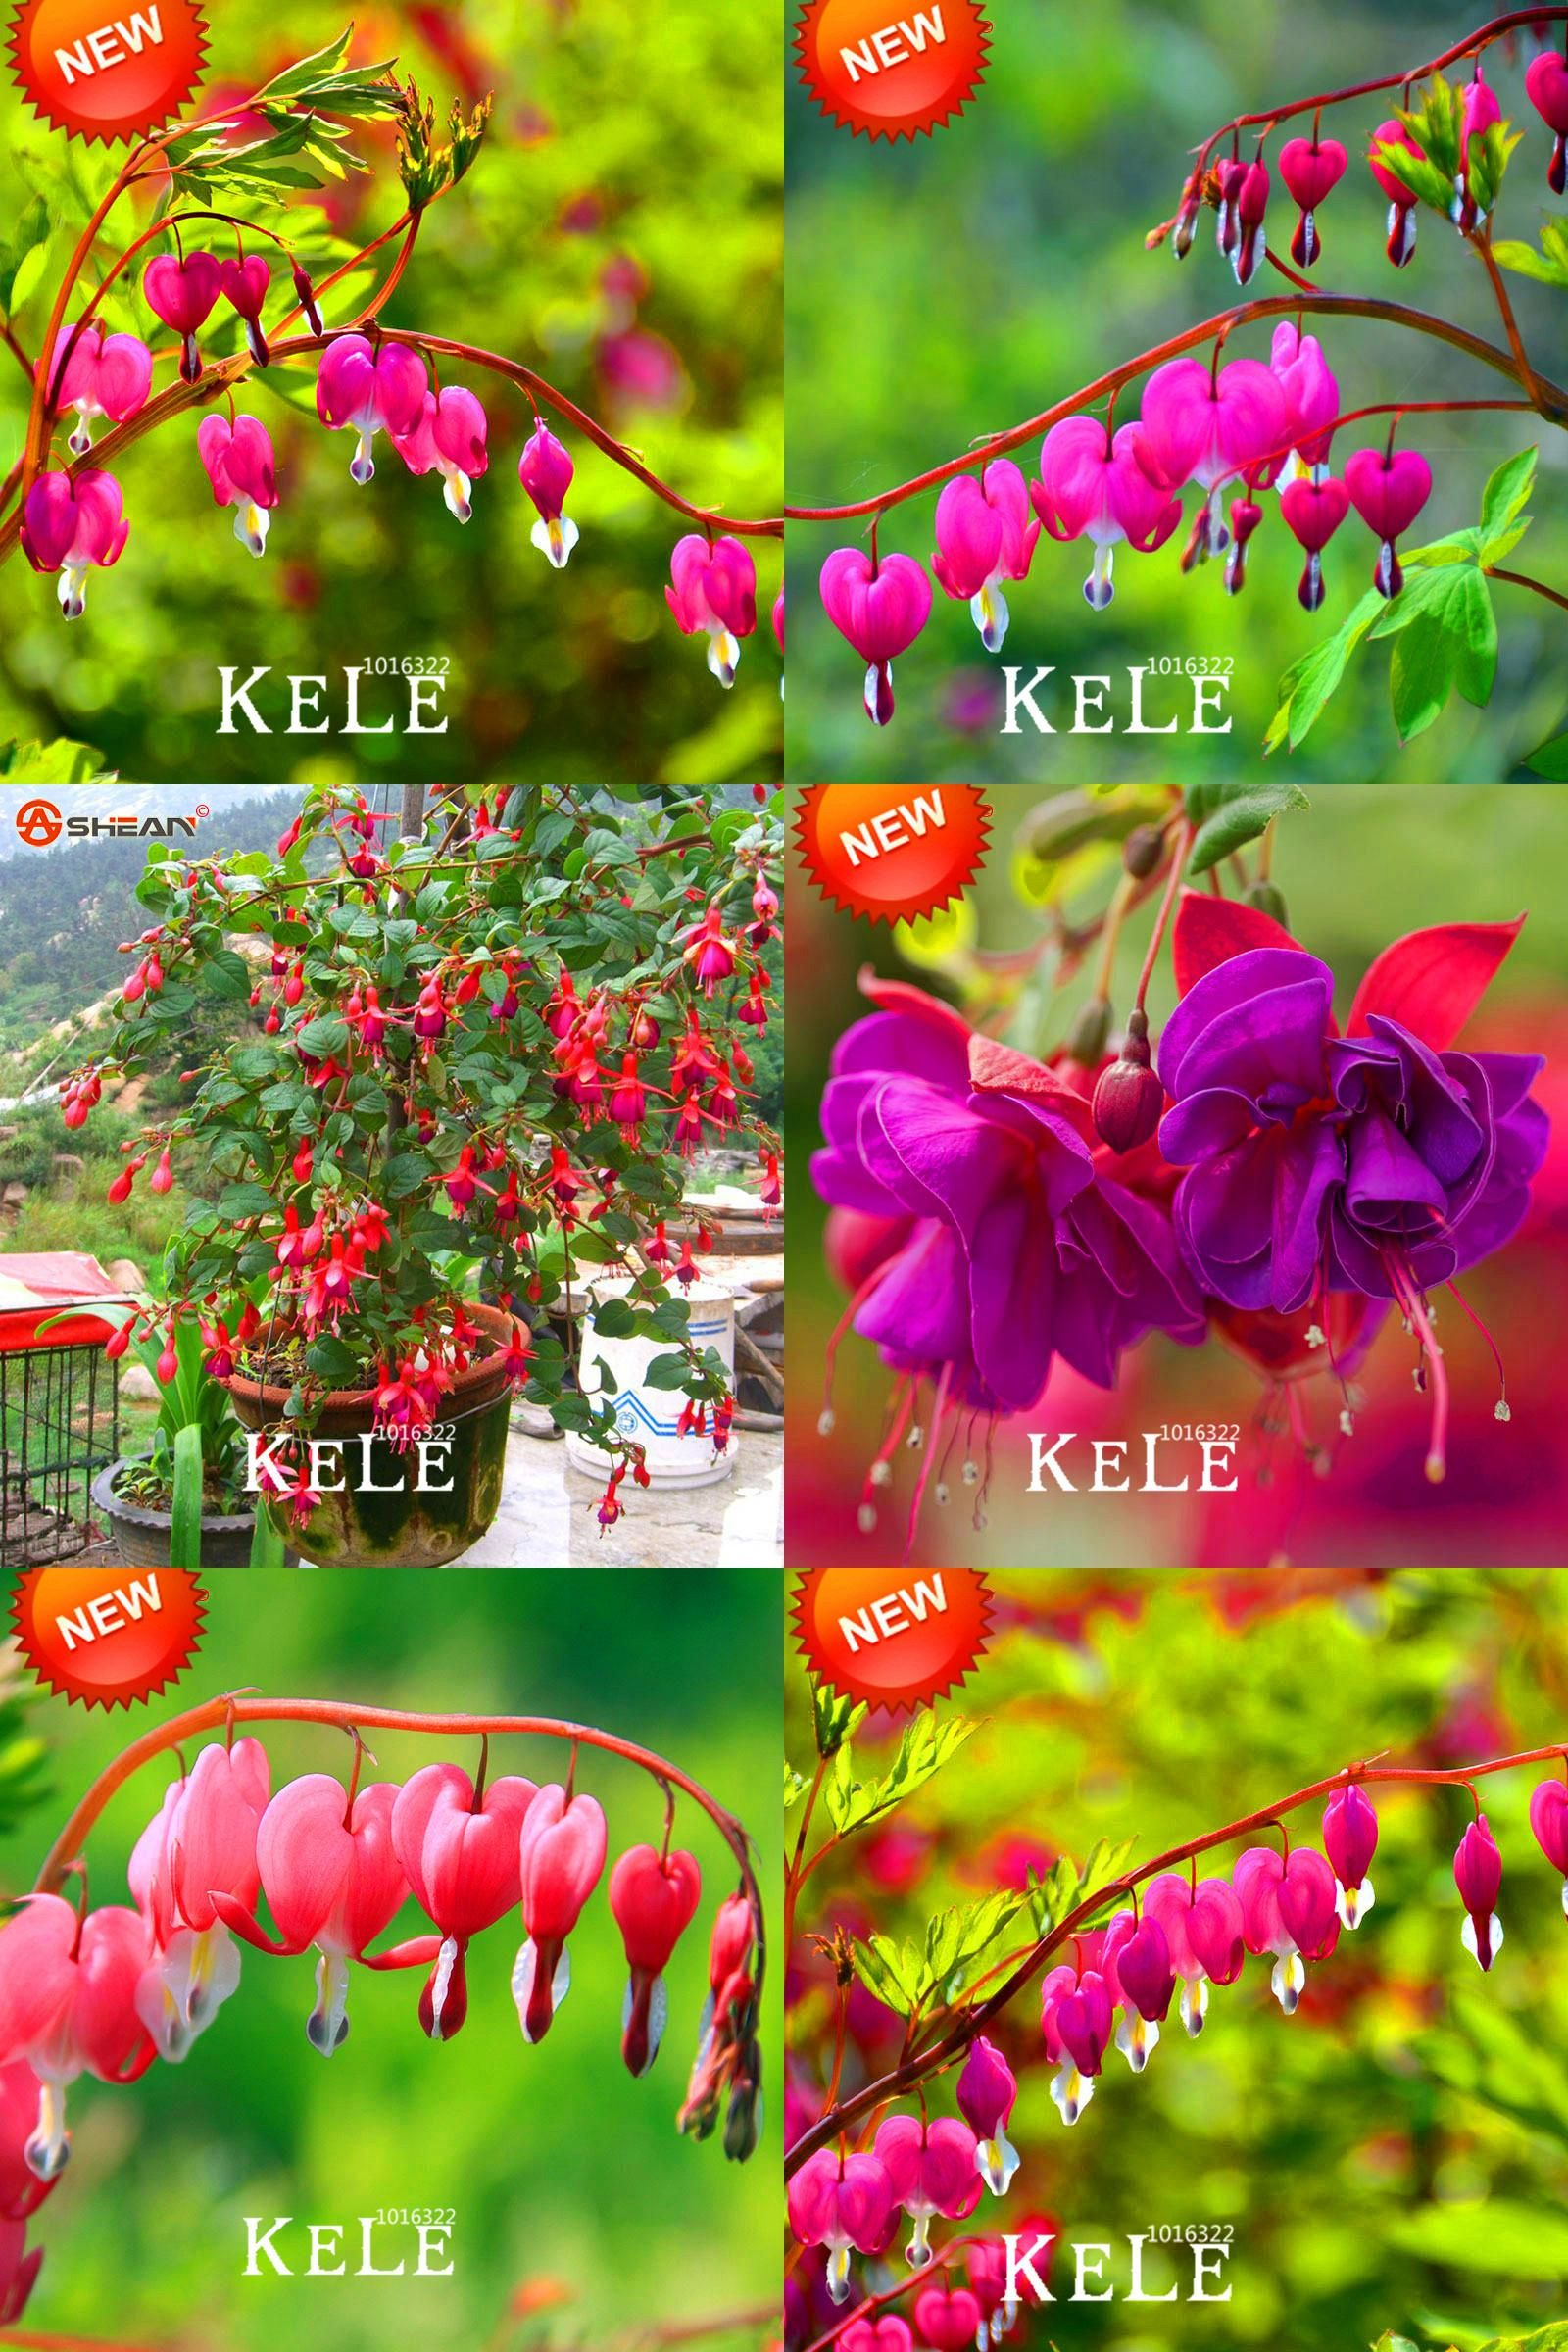 50 White Fuchsia Seeds Potted Flower Seeds Potted Plants Hanging Fuchsia